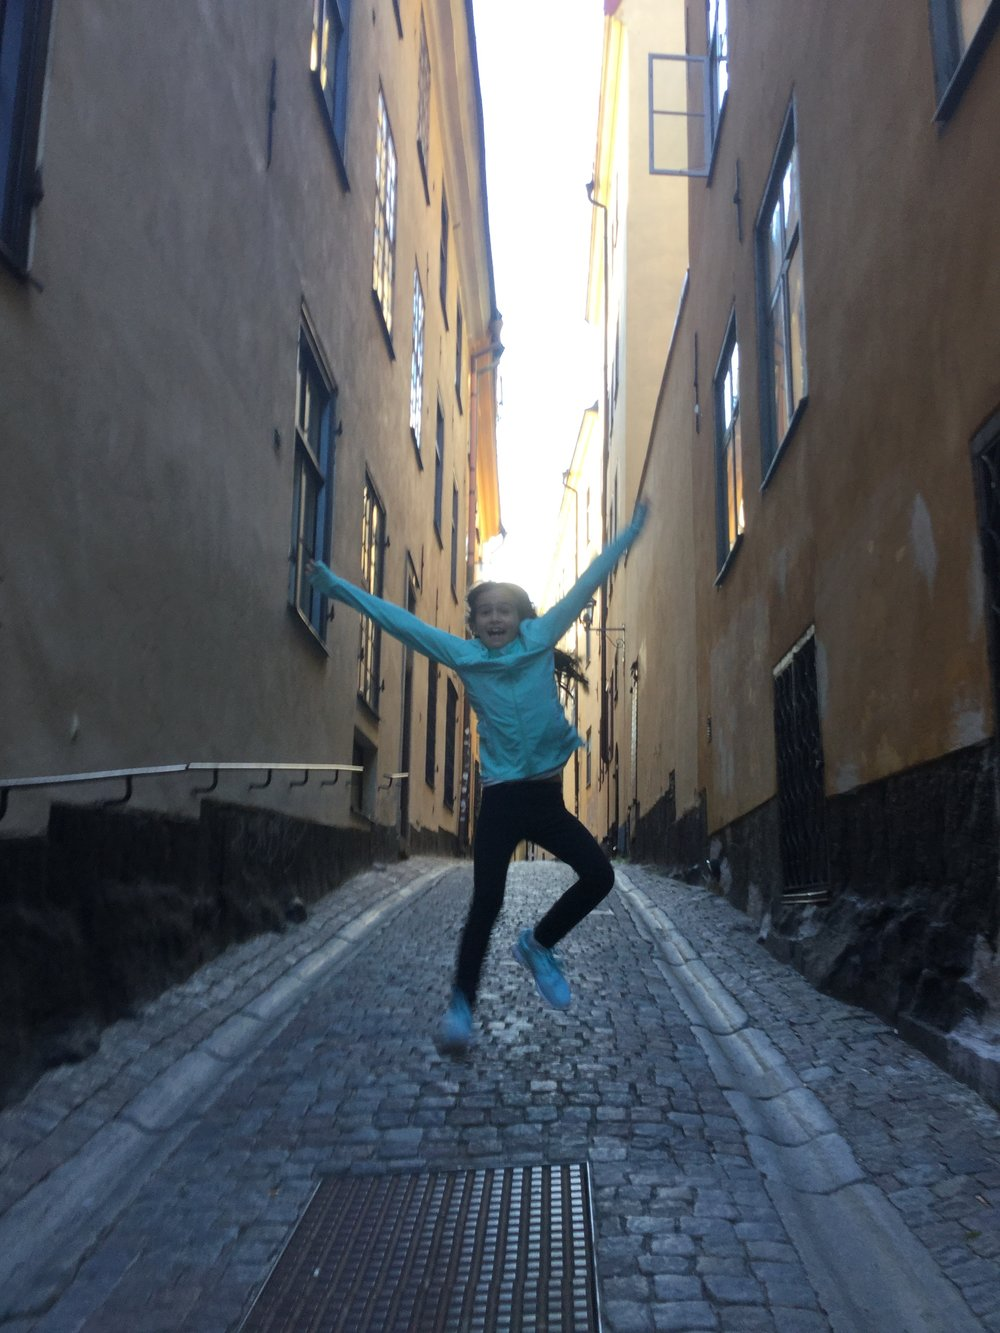 Lili doing one of her leaps in Gamla Stan.